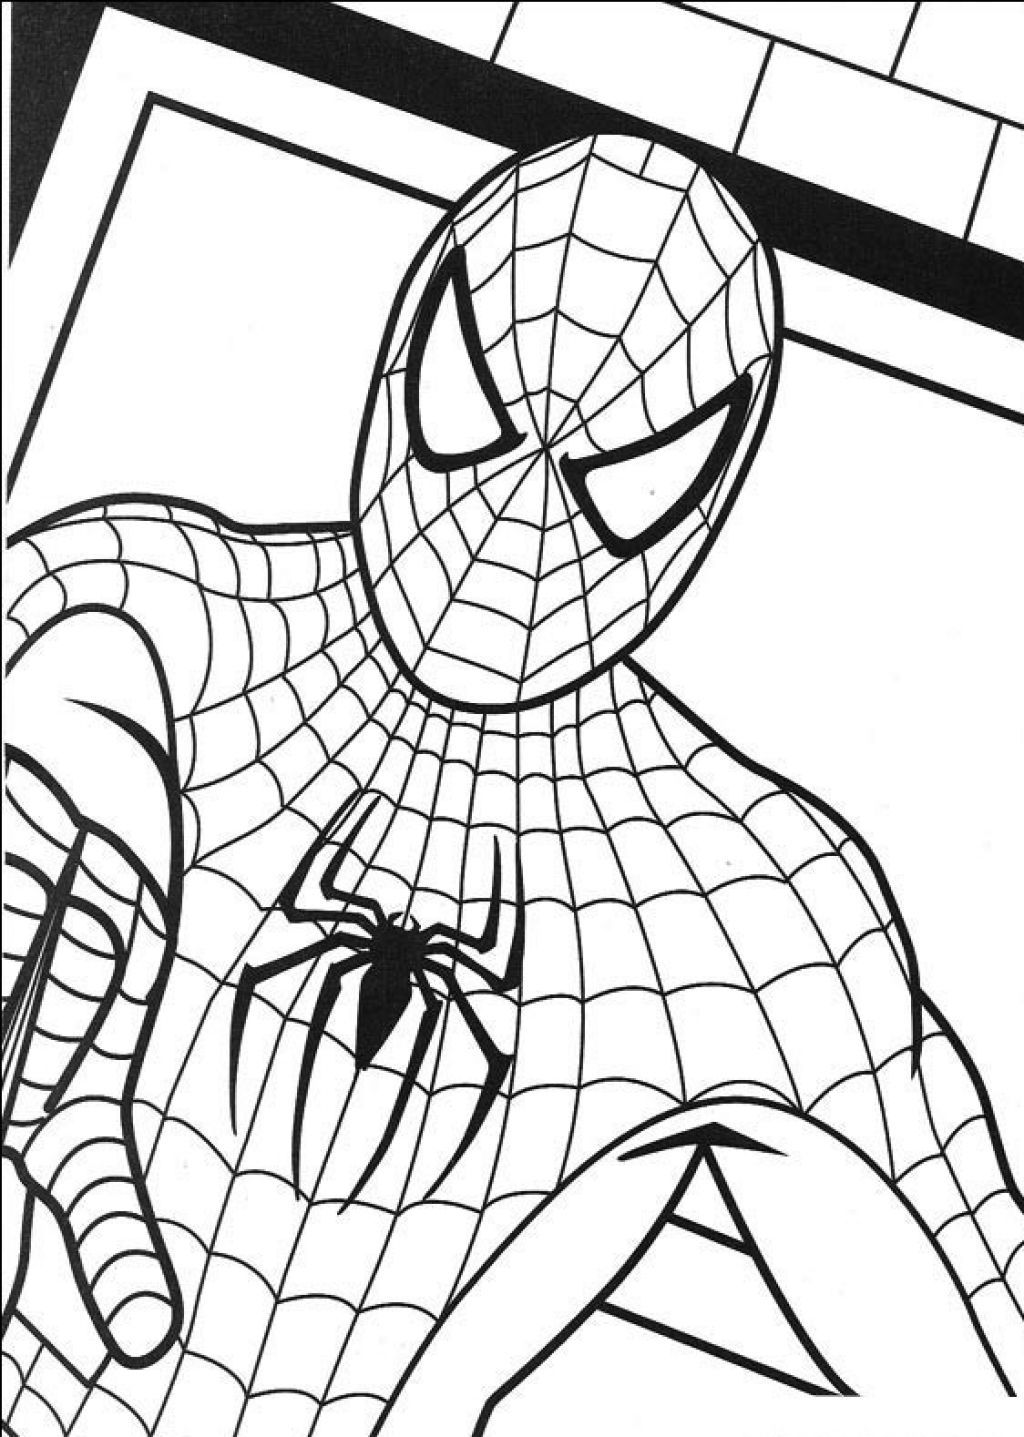 spiderman outline spiderman outline drawing at getdrawings free download spiderman outline 1 1